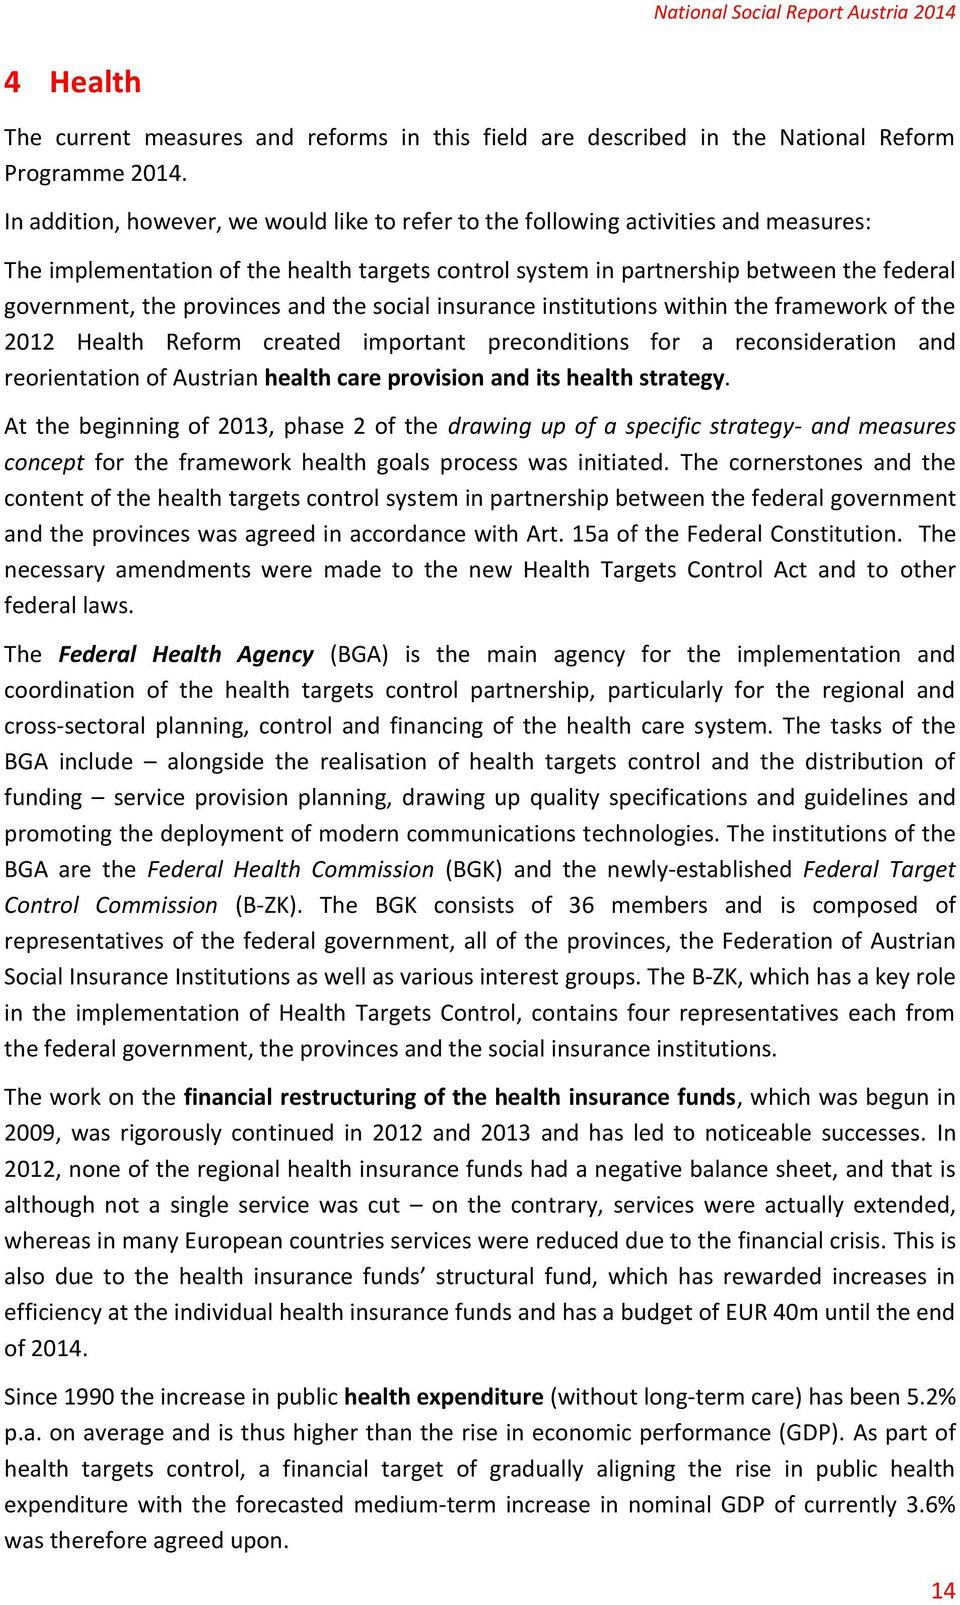 provinces and the social insurance institutions within the framework of the 2012 Health Reform created important preconditions for a reconsideration and reorientation of Austrian health care